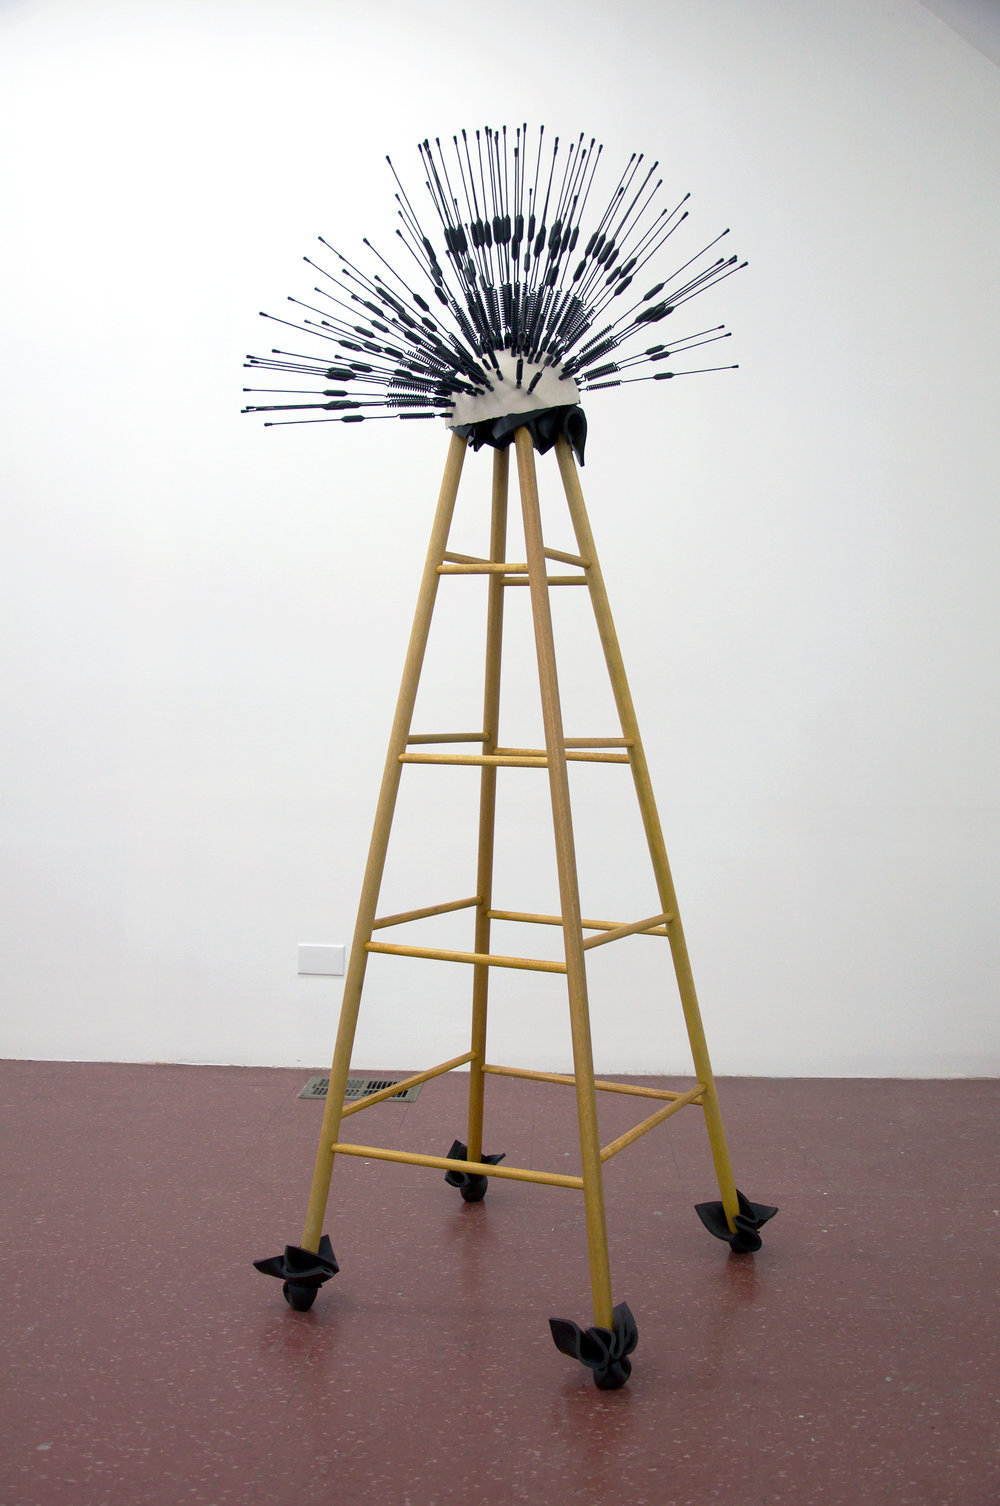 The New Wardenclyffe Folly , 2017 cellular antennas, porcelain, wood, foam